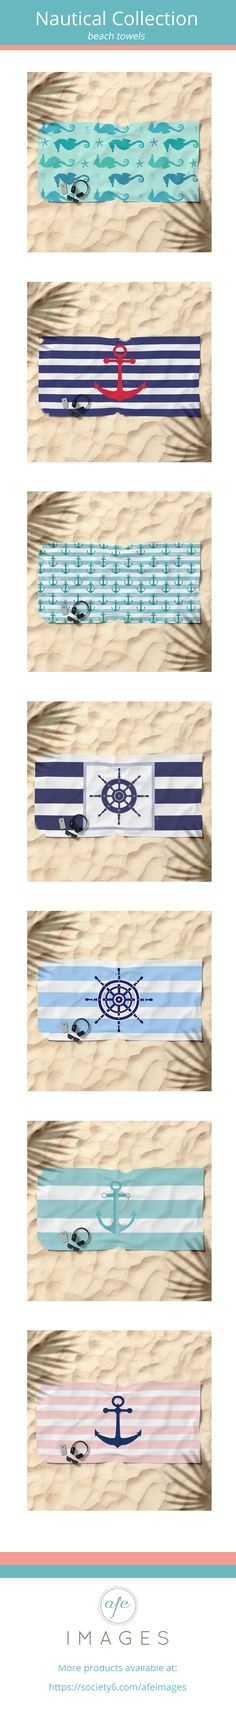 "Hey beach lover! This is a beautiful collection featuring nautical, coastal and beach inspired designs such as anchors, seahorses, helm wheel and others. Beach towel dimensions are 74""x37"" These designs is also available as a bath and hand towel. For custom orders or design please email amalia@afeimages.ca"